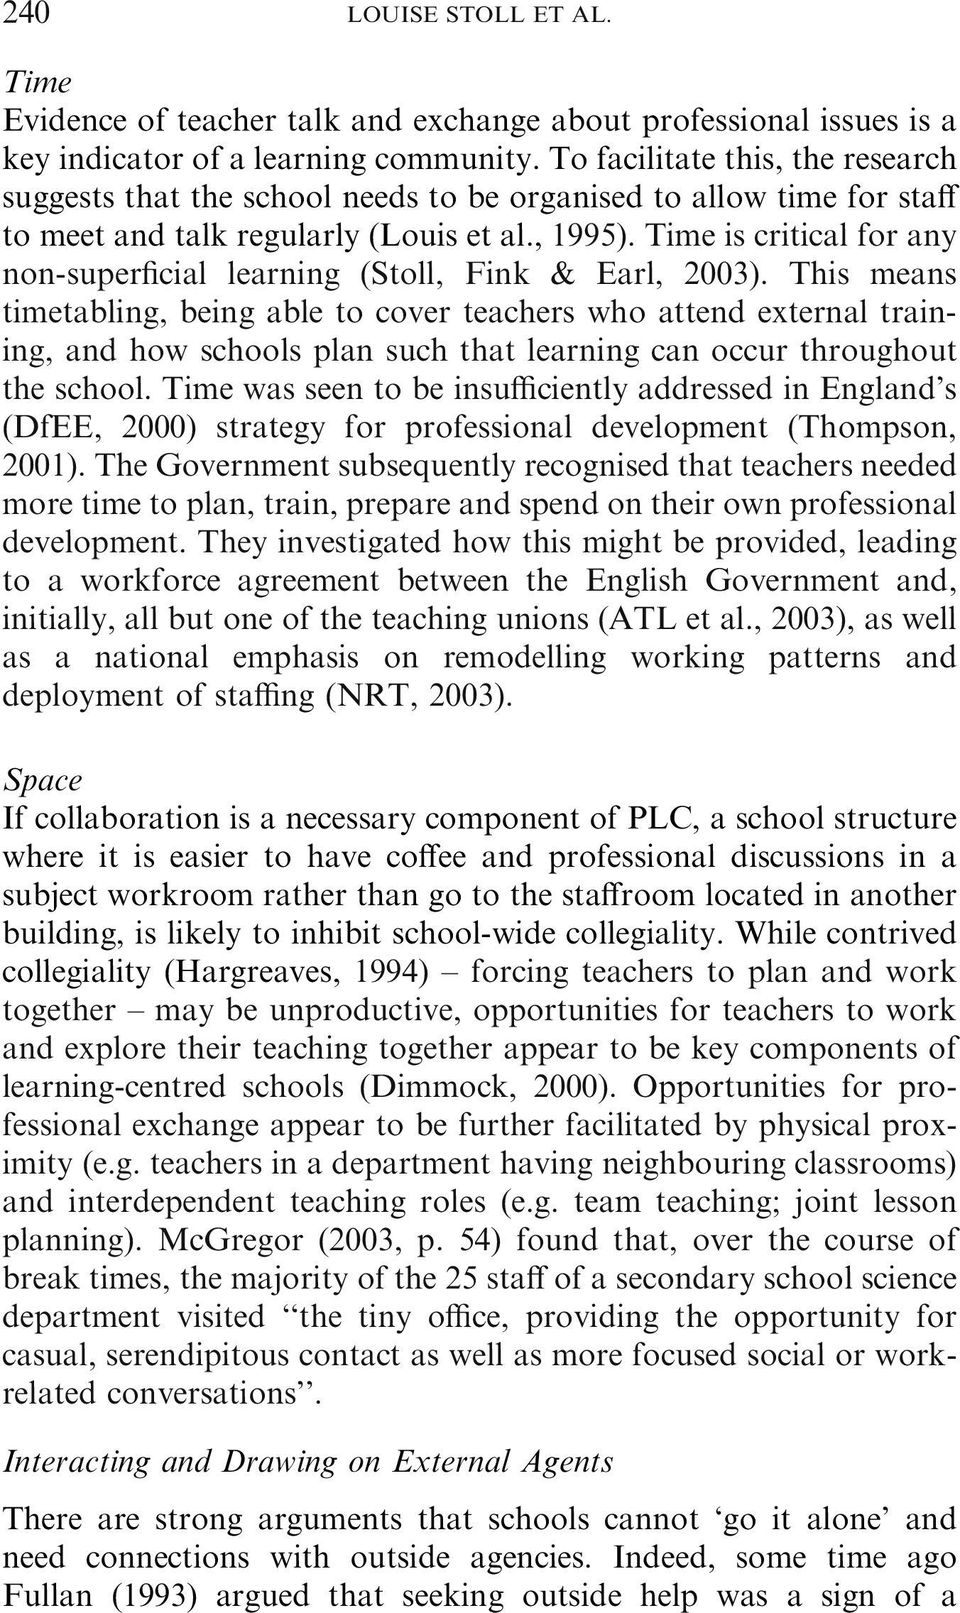 Time is critical for any non-superficial learning (Stoll, Fink & Earl, 2003).